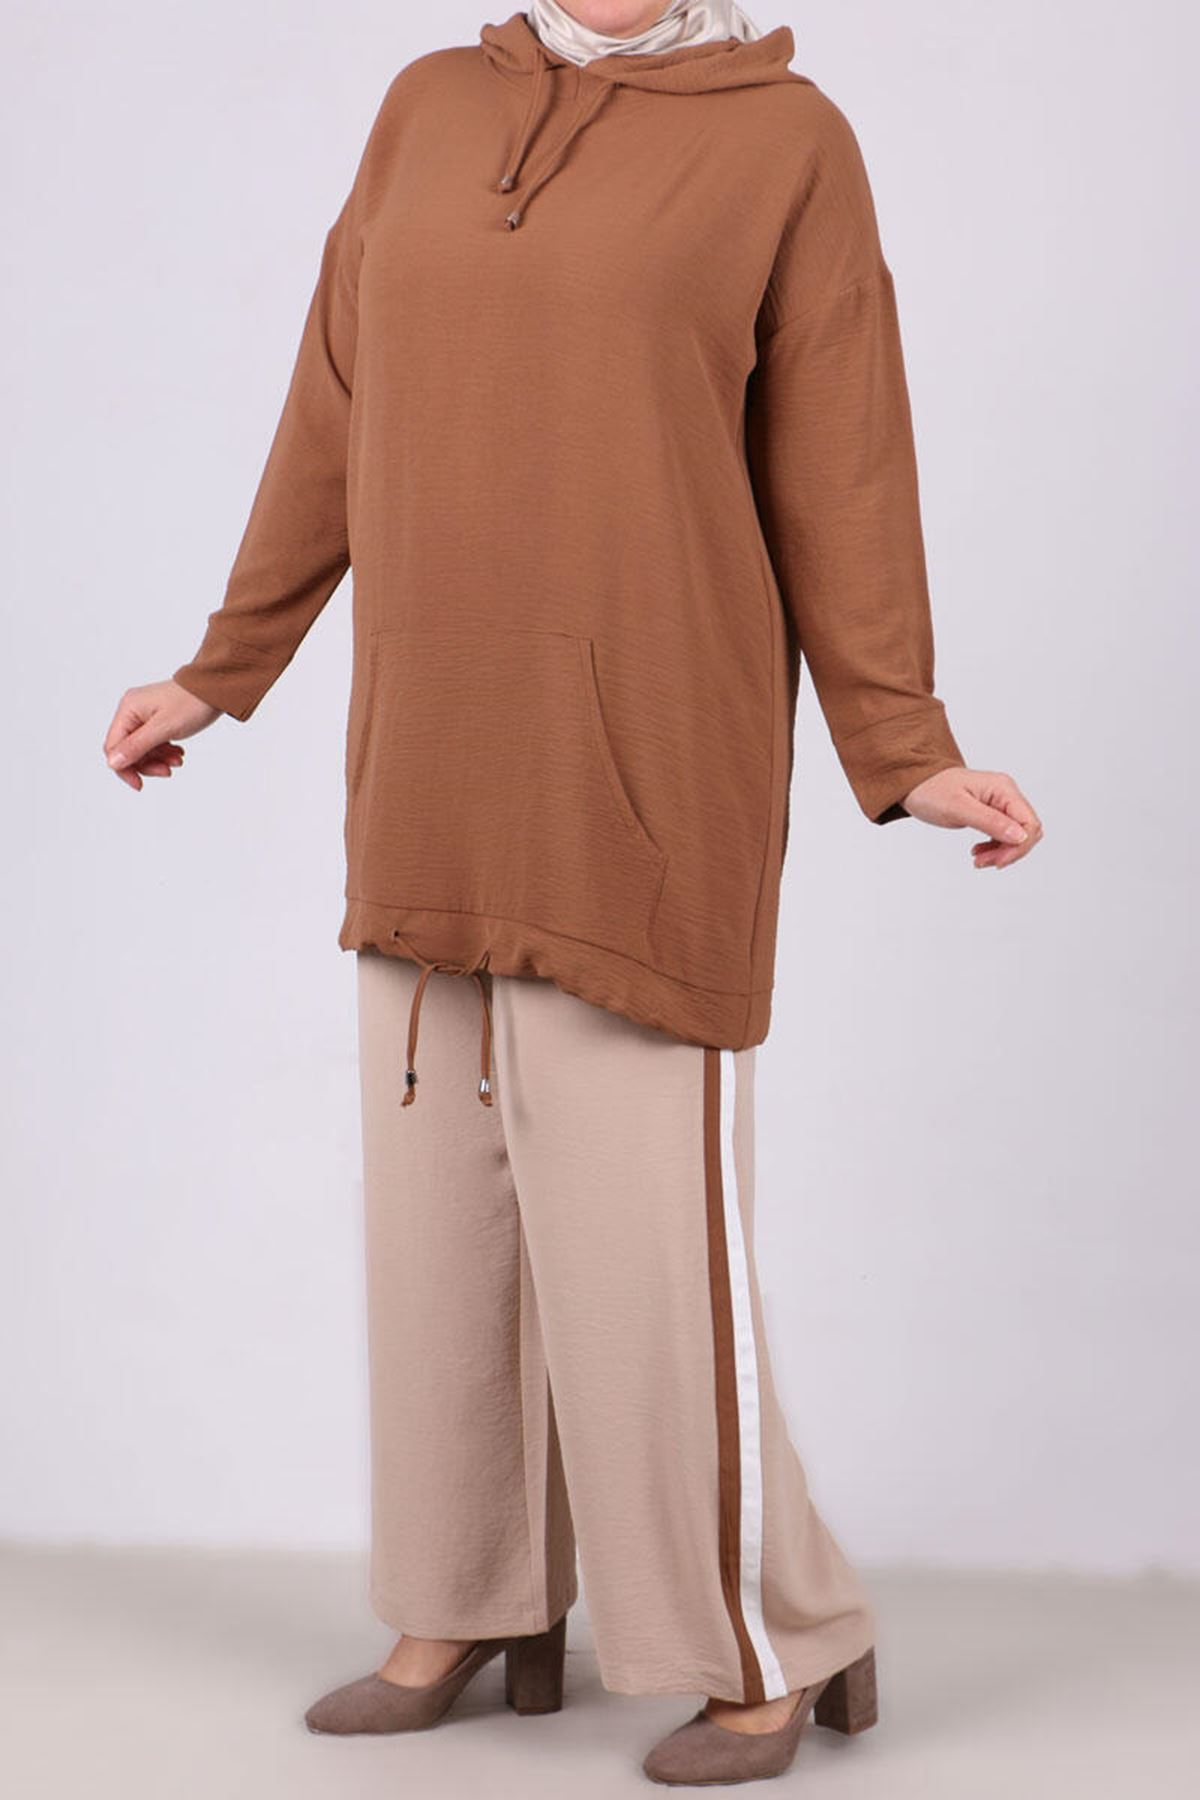 7673 Plus Size Hooded Two Piece Set with Tunic and Pants- Coffee